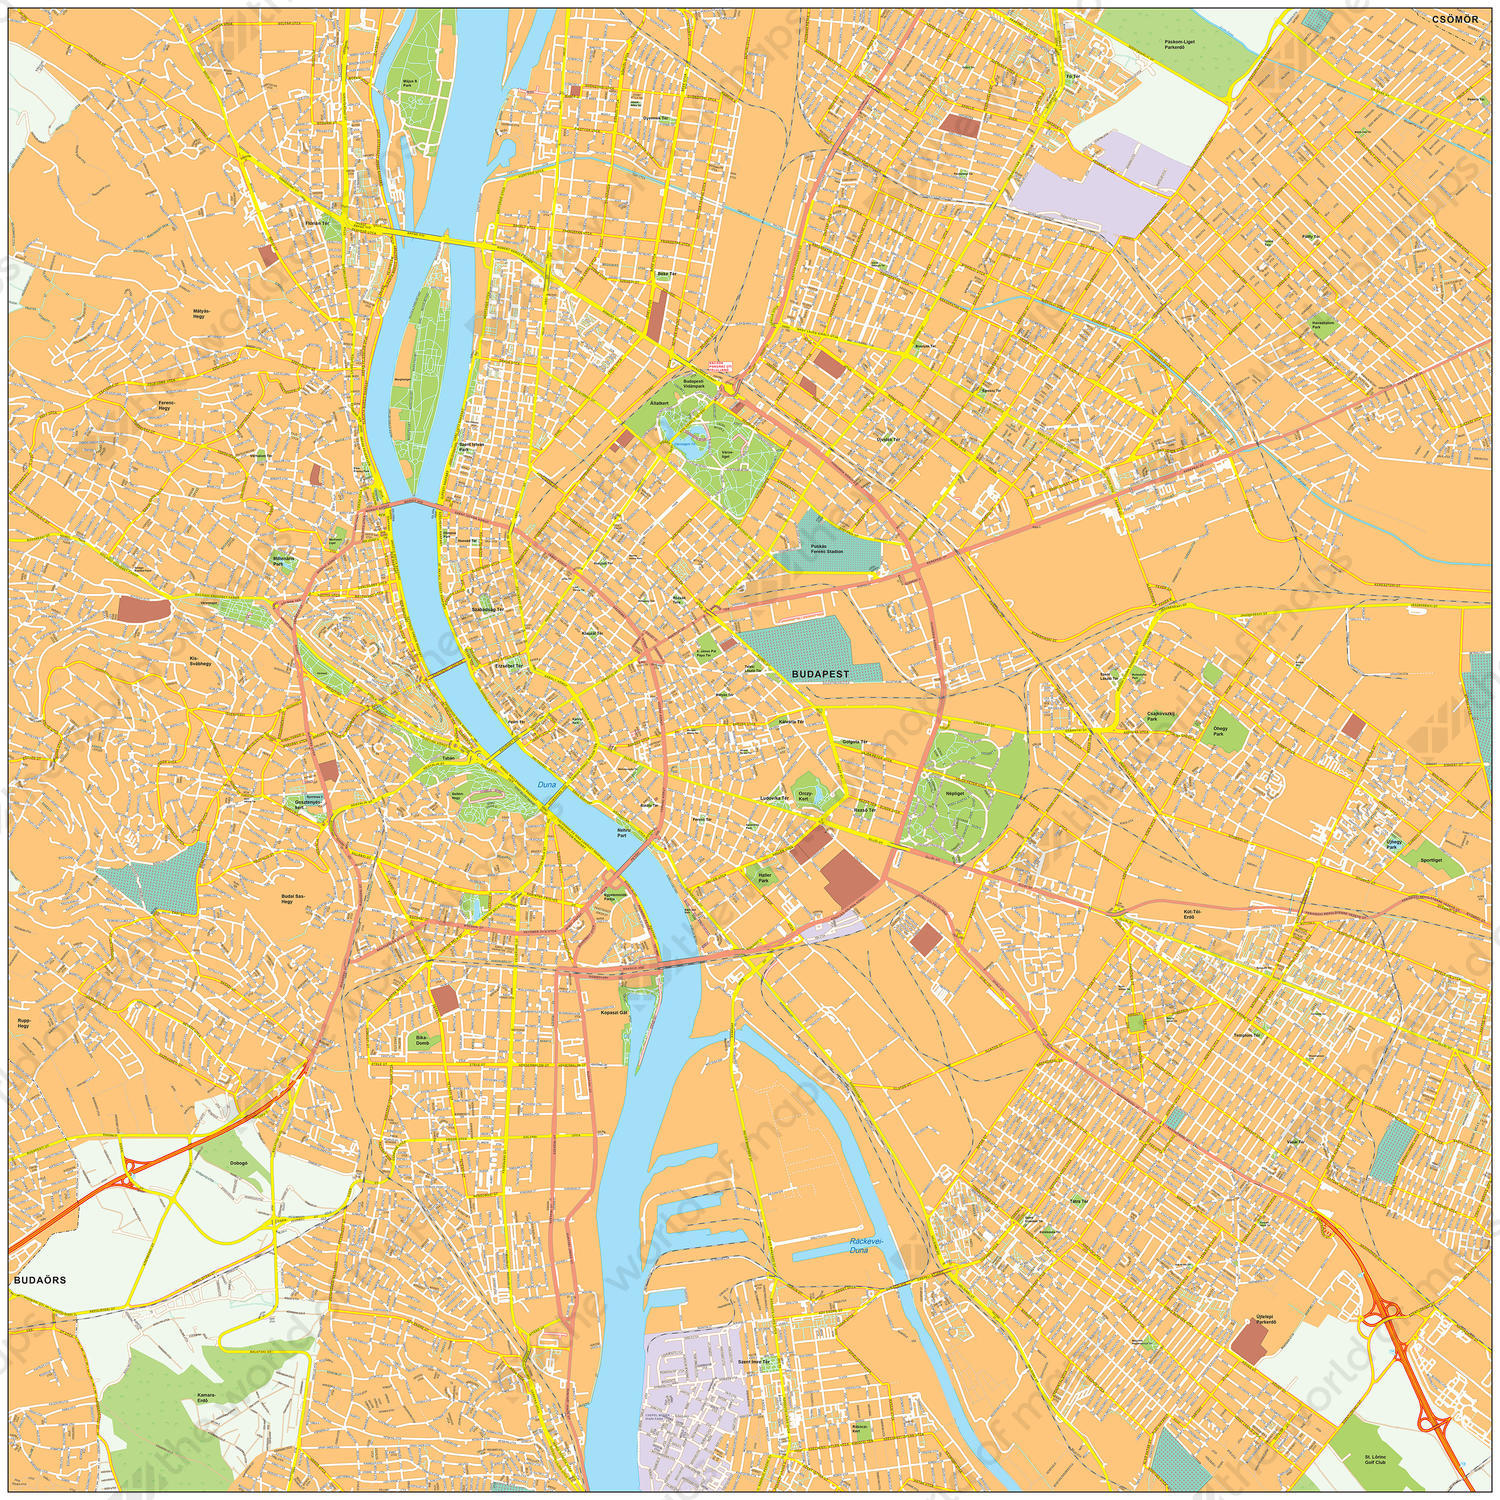 Digital City Map Budapest 472 The World Of Maps Com